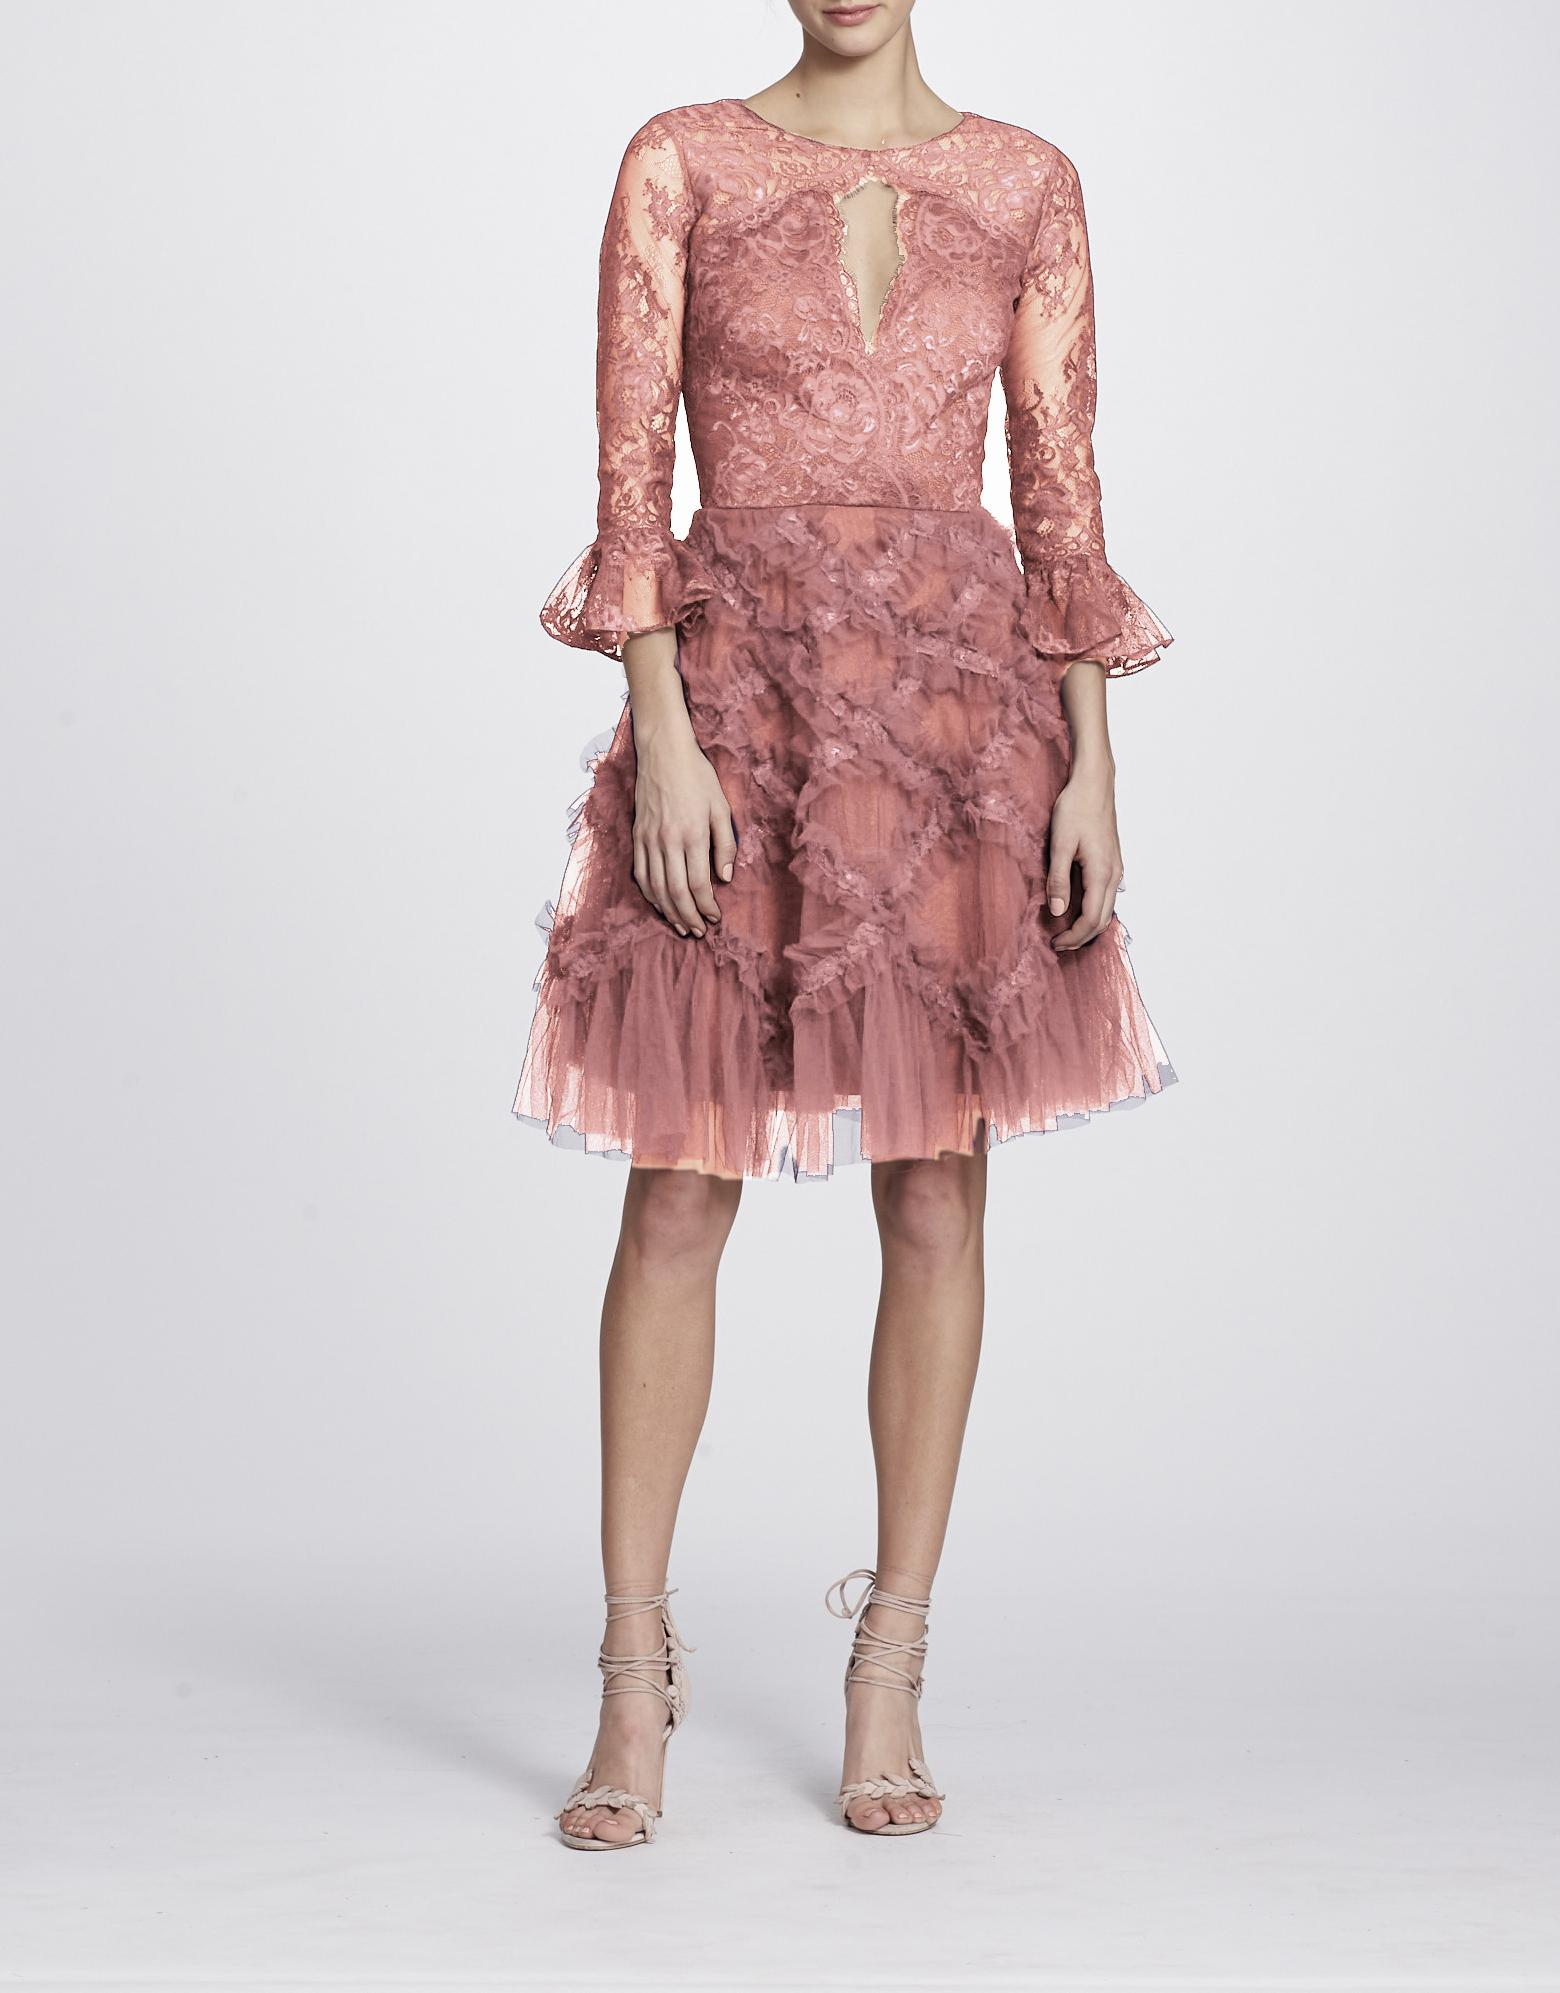 a27cde40bf2 Marchesa Notte Fall Winter 2018 Sleeve Cocktail Dress In Purple ...